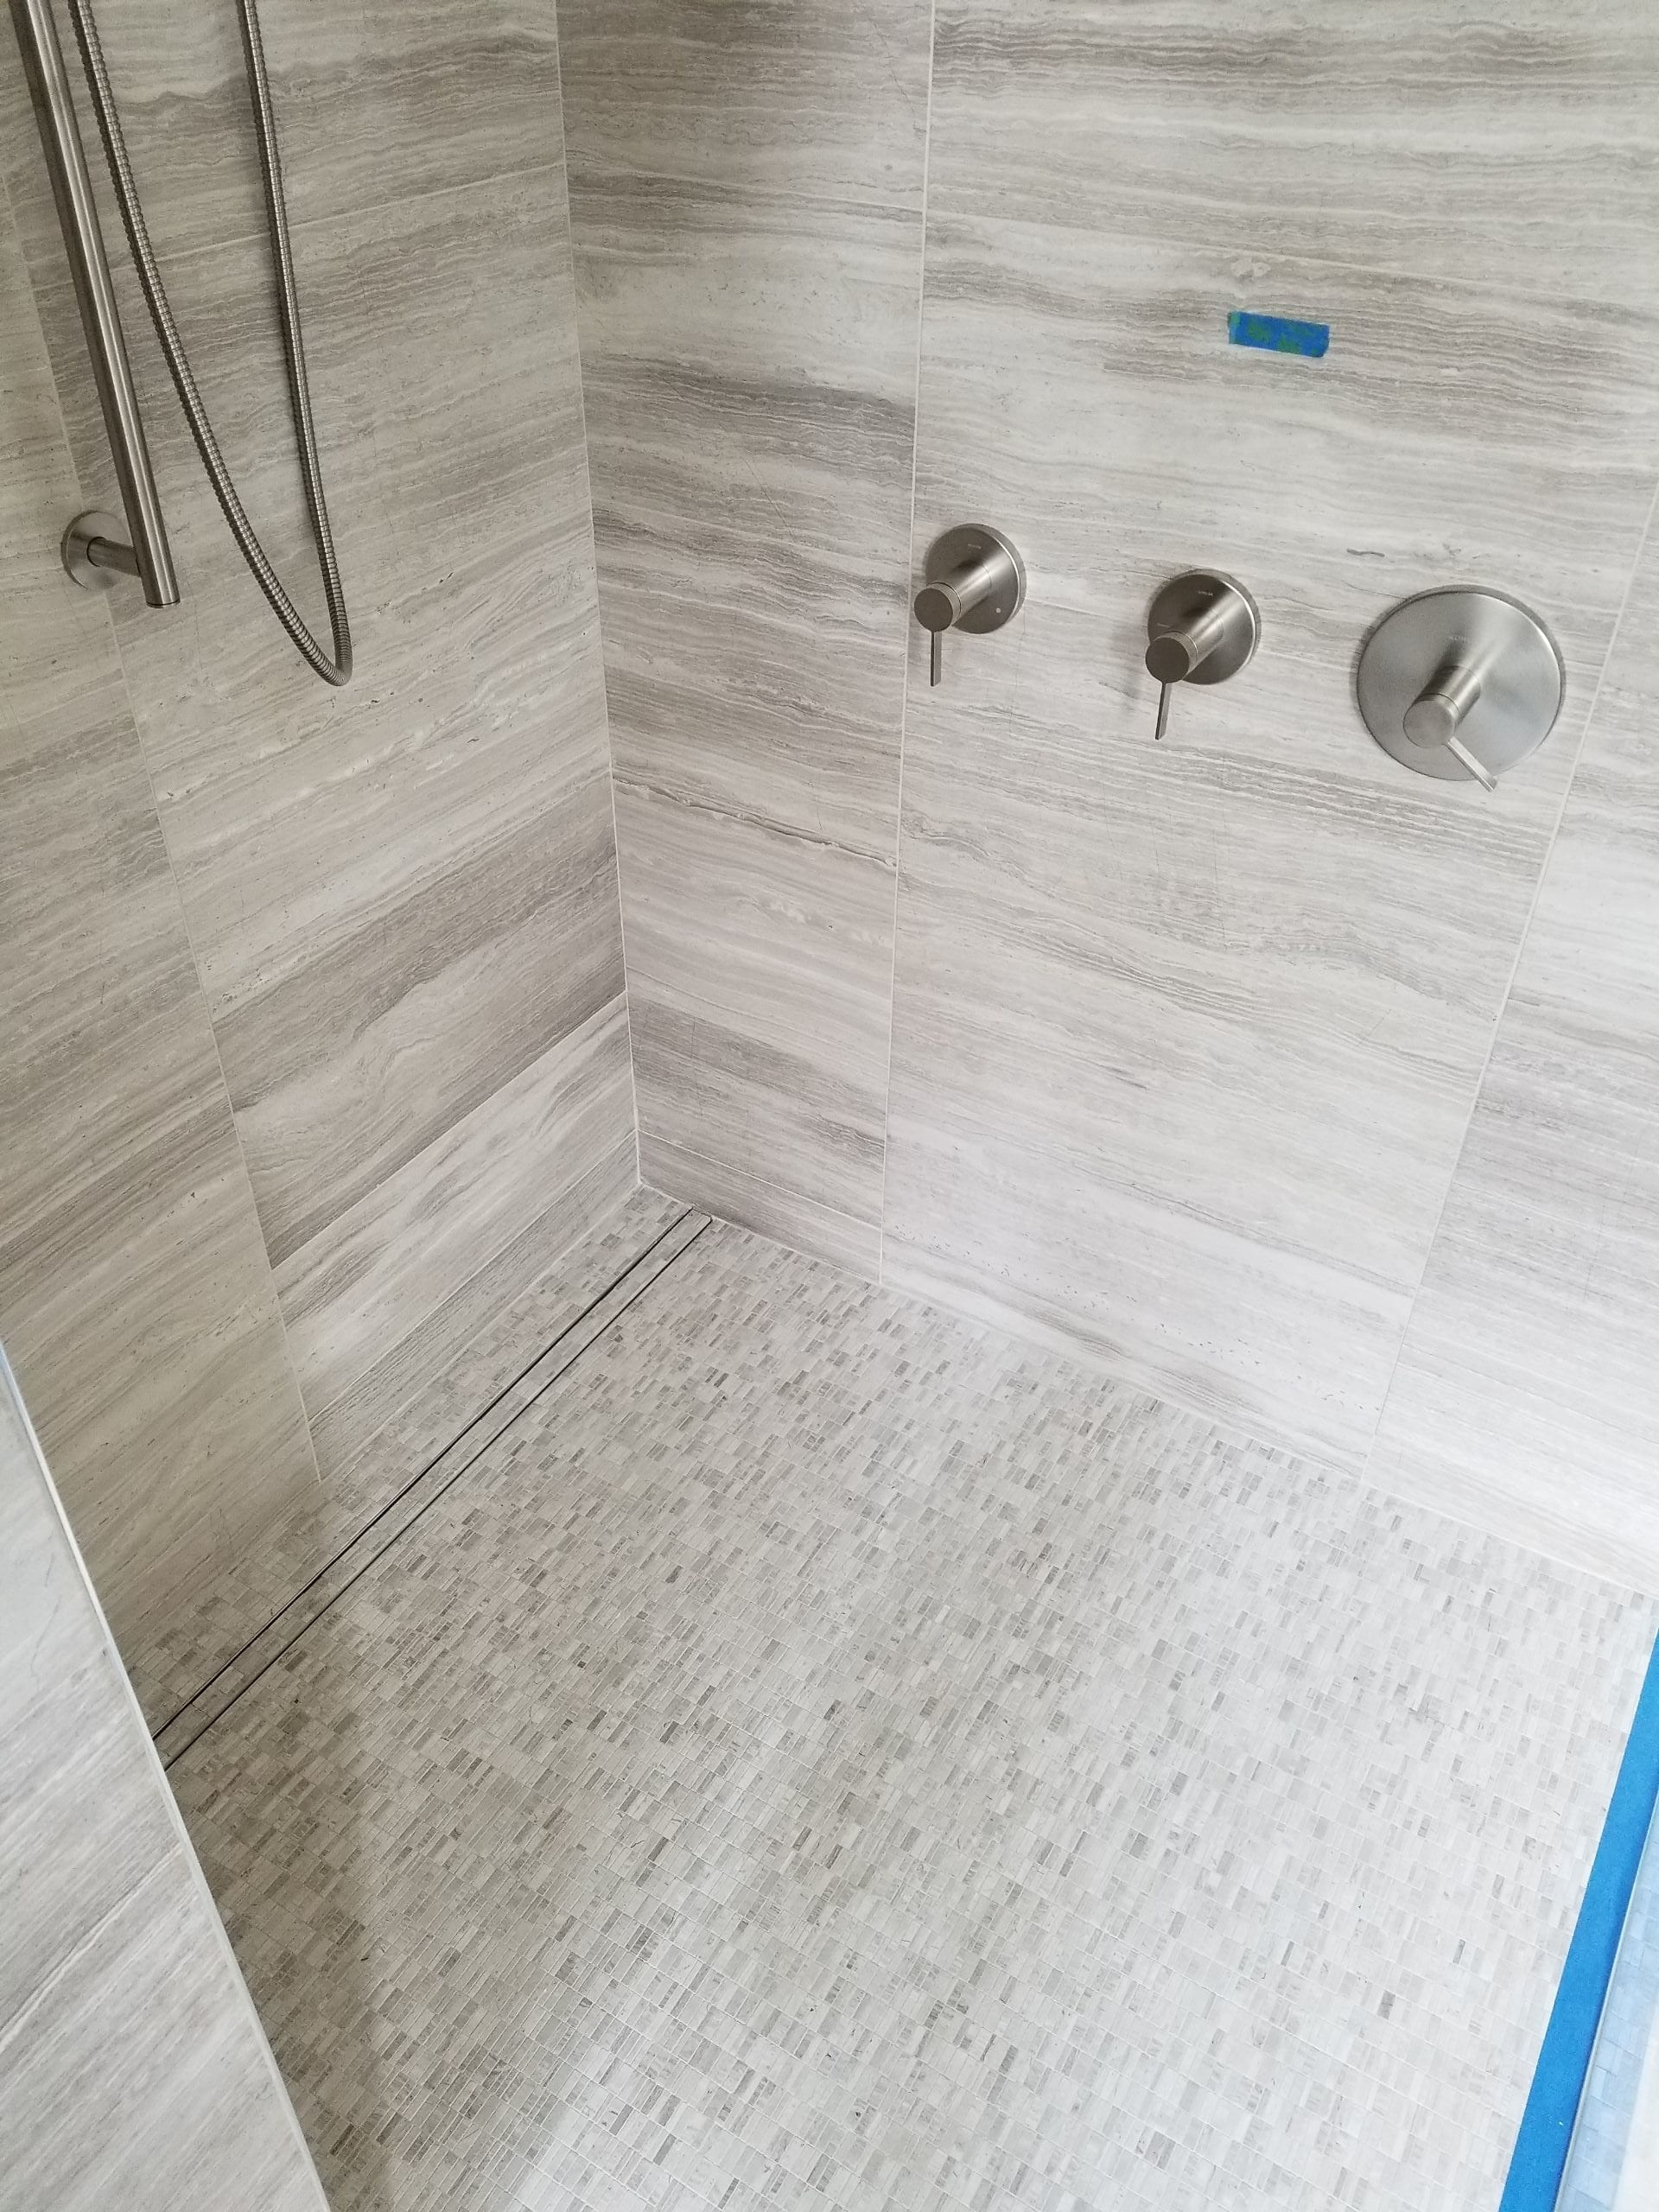 bathroom, remodeling, home solutions, shower controls, tiles, installed, contractors, worcester, shrewsbury, metrowest, remodel ideas,